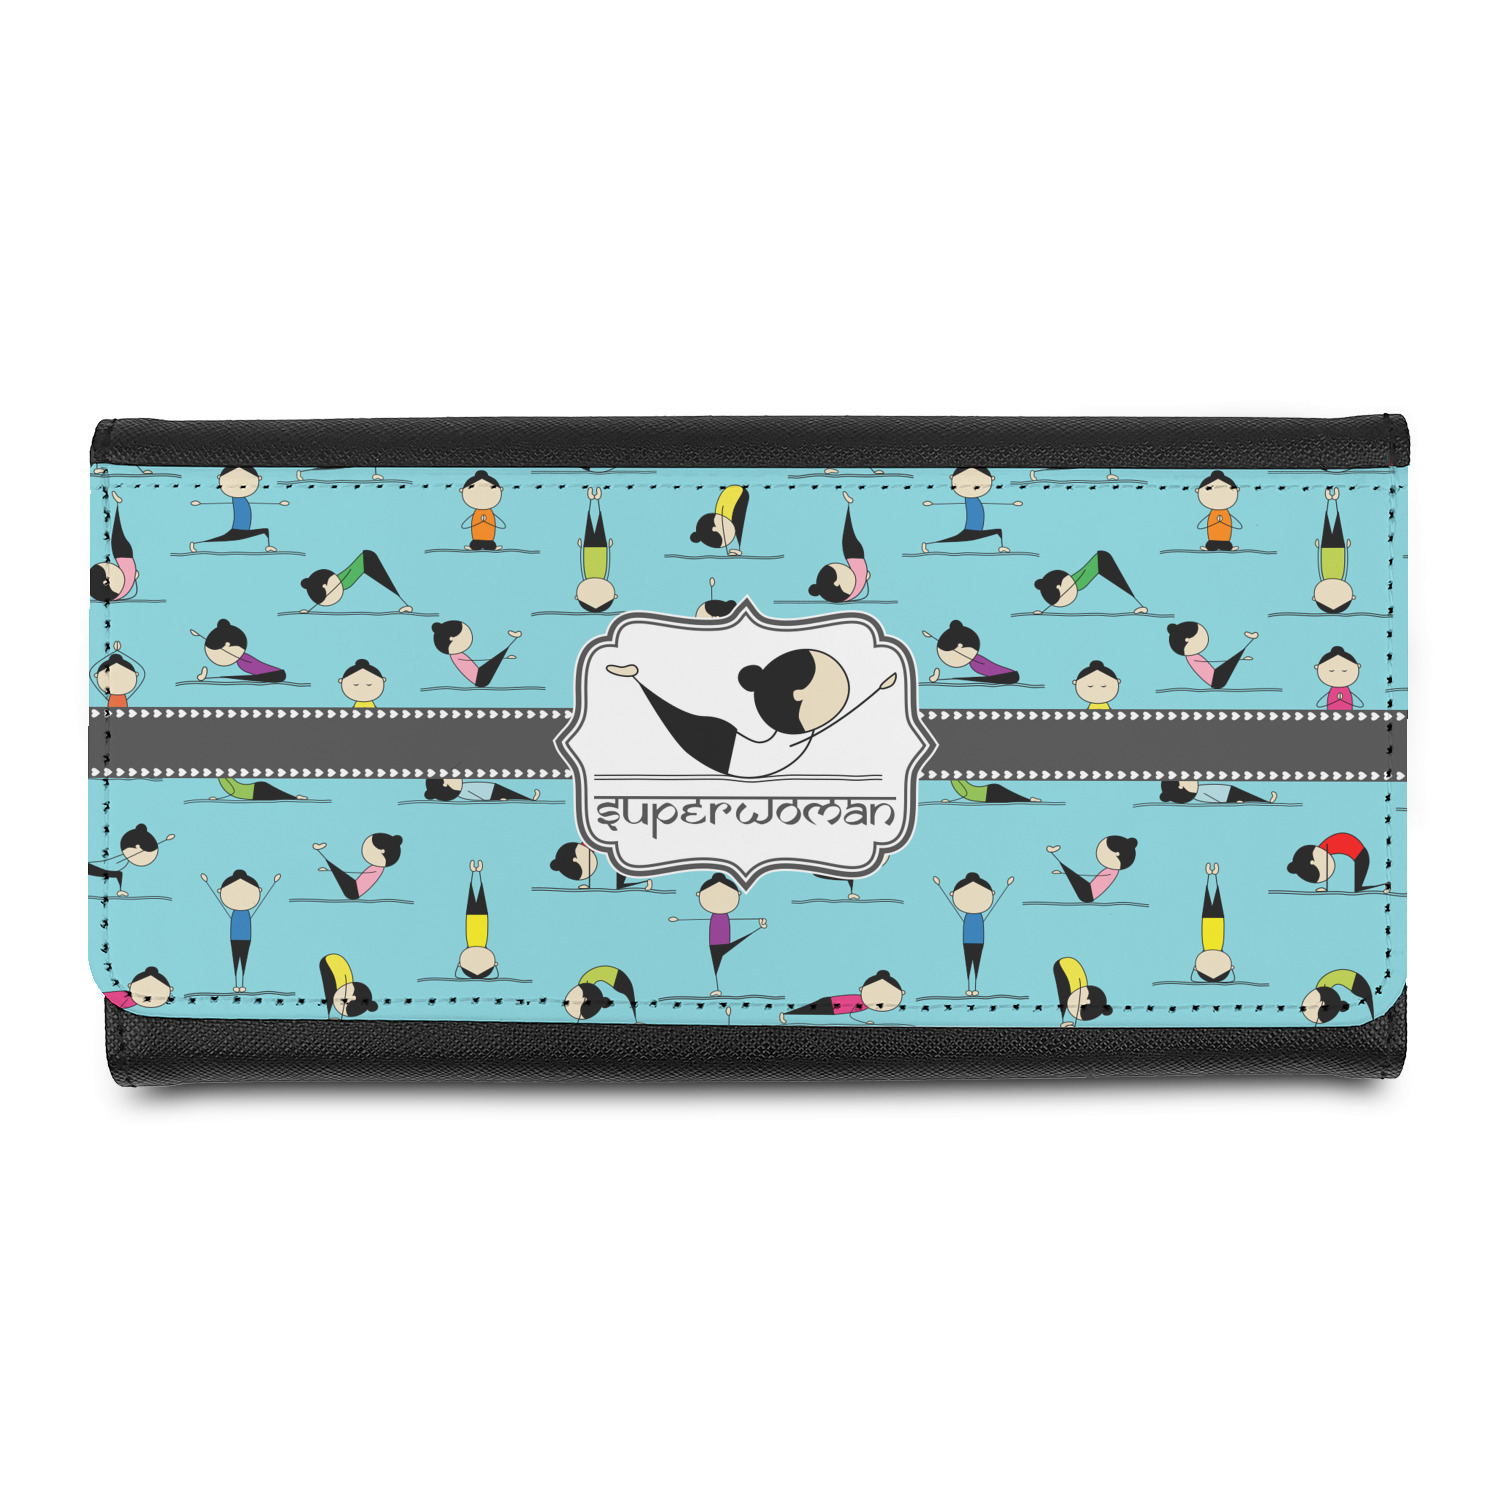 Yoga Poses Leatherette Ladies Wallet (Personalized)